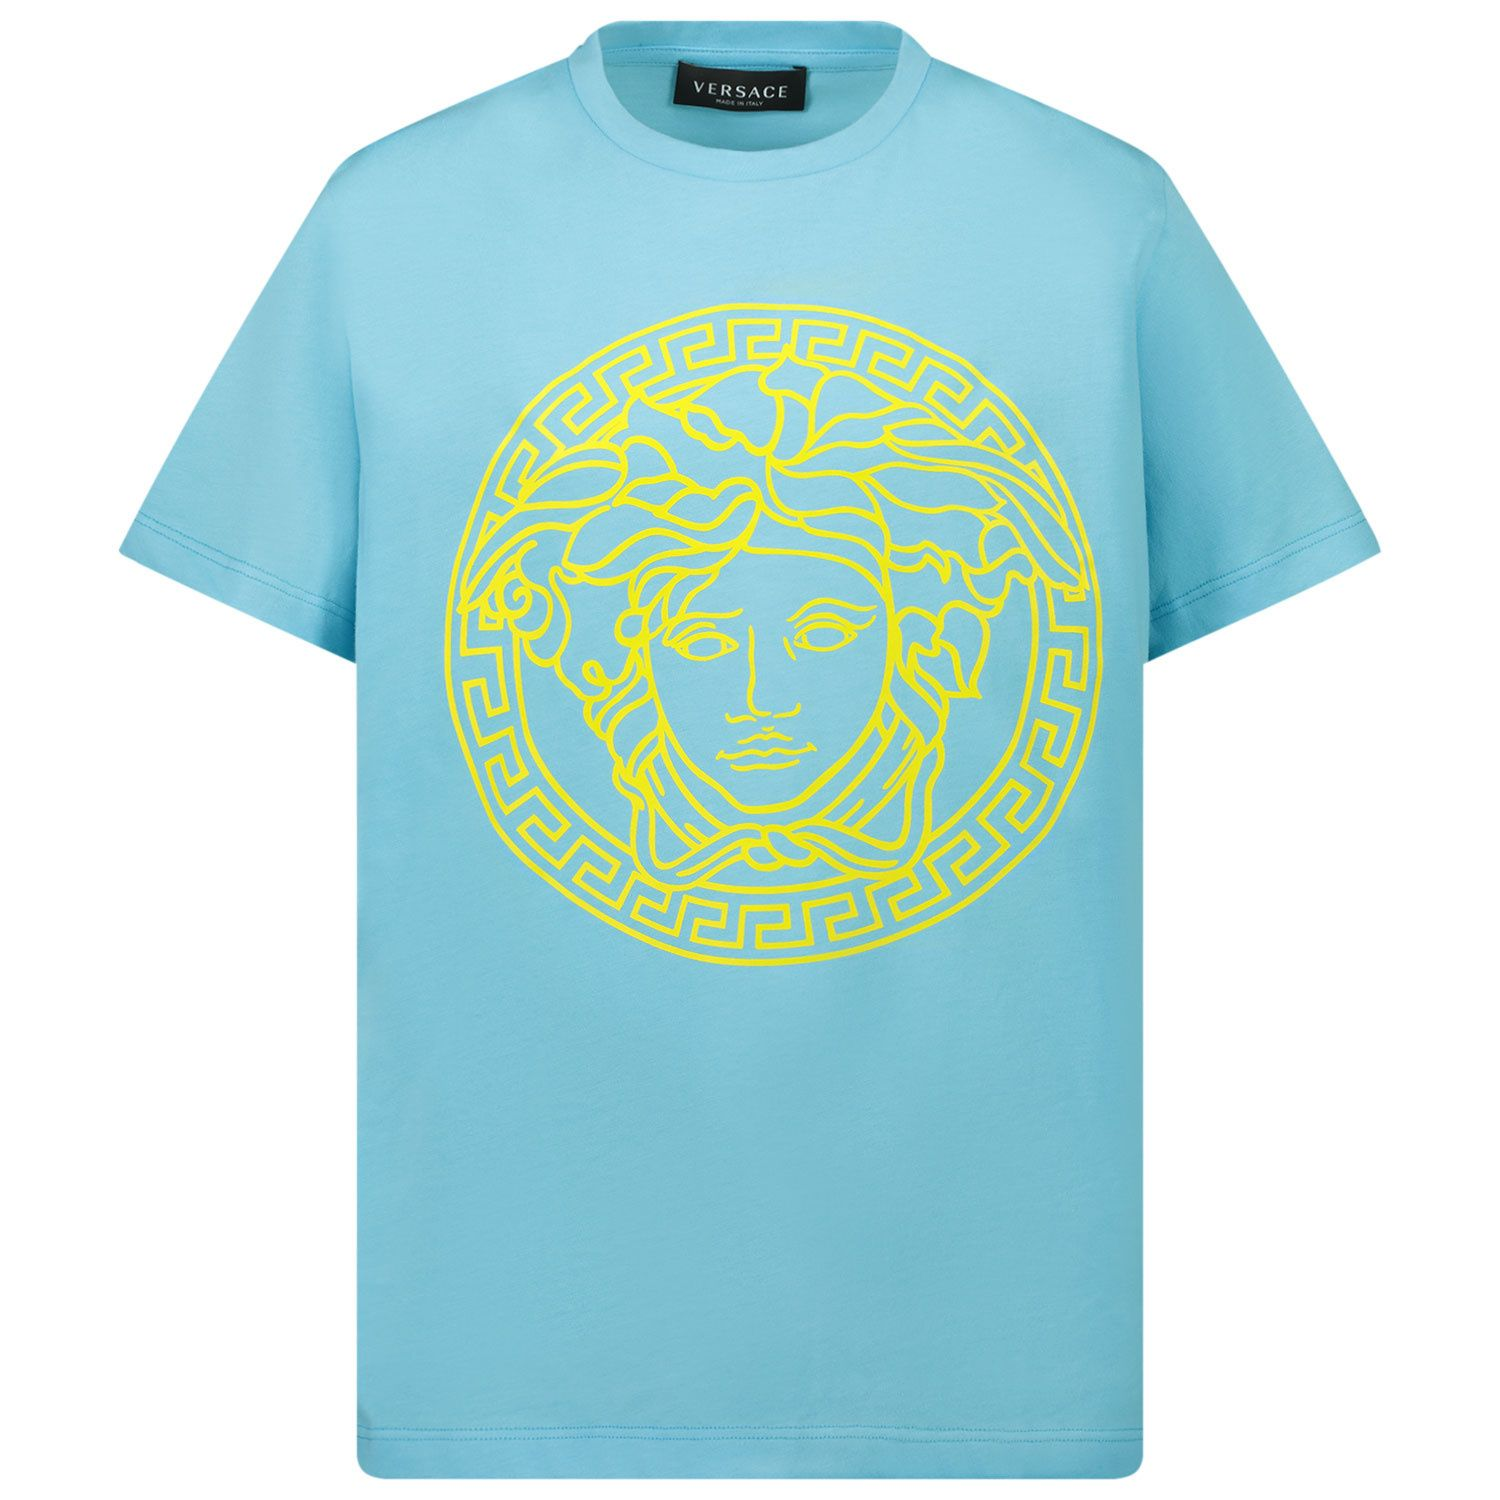 Picture of Versace 1000239 1A00290 kids t-shirt turquoise